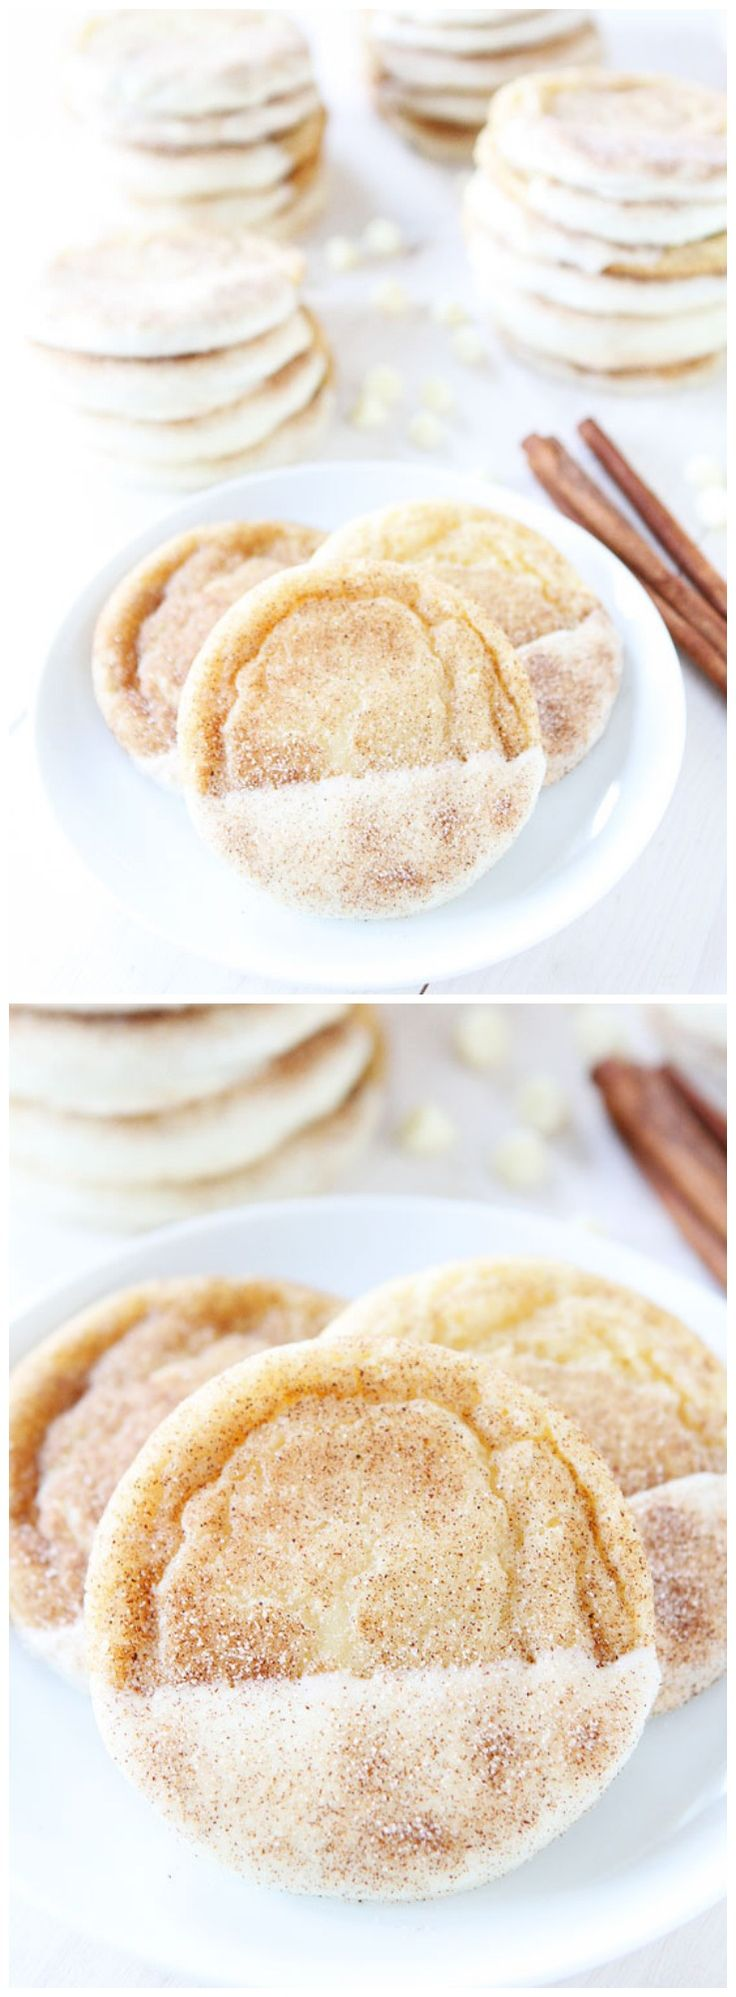 White Chocolate Dipped Snickerdoodle Recipe | Seriously. How festive are these cookies??